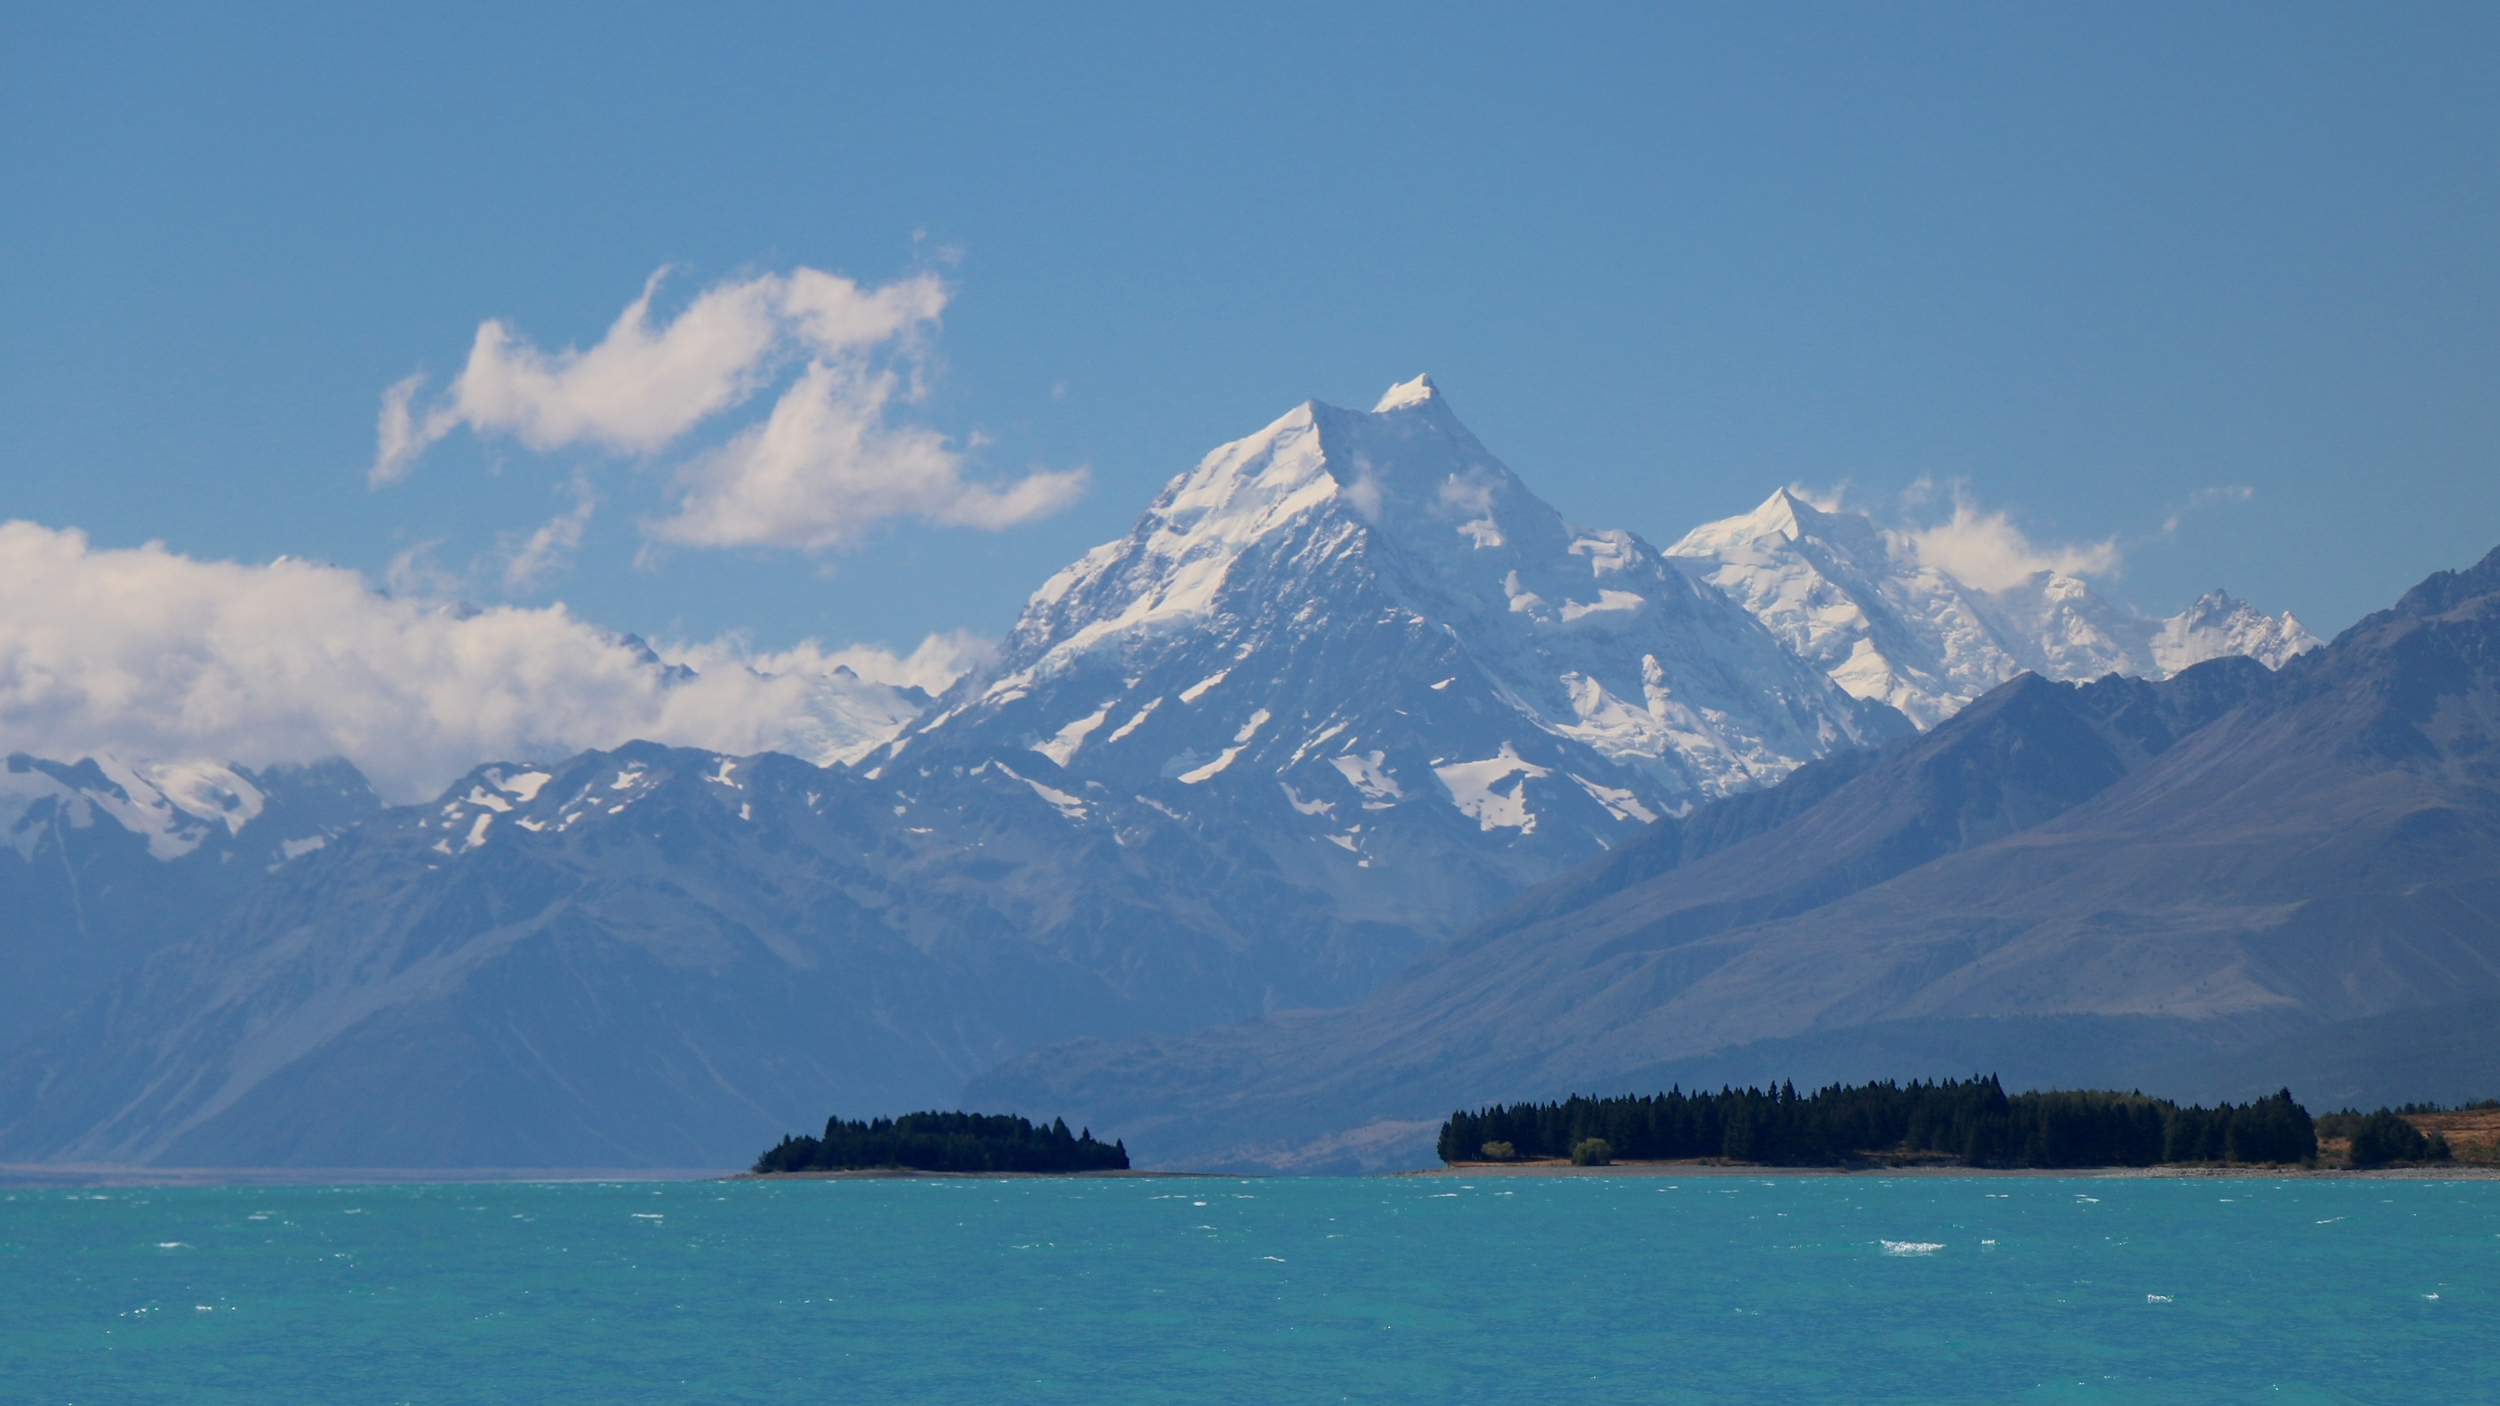 Lake Pukaki & Mout Cook